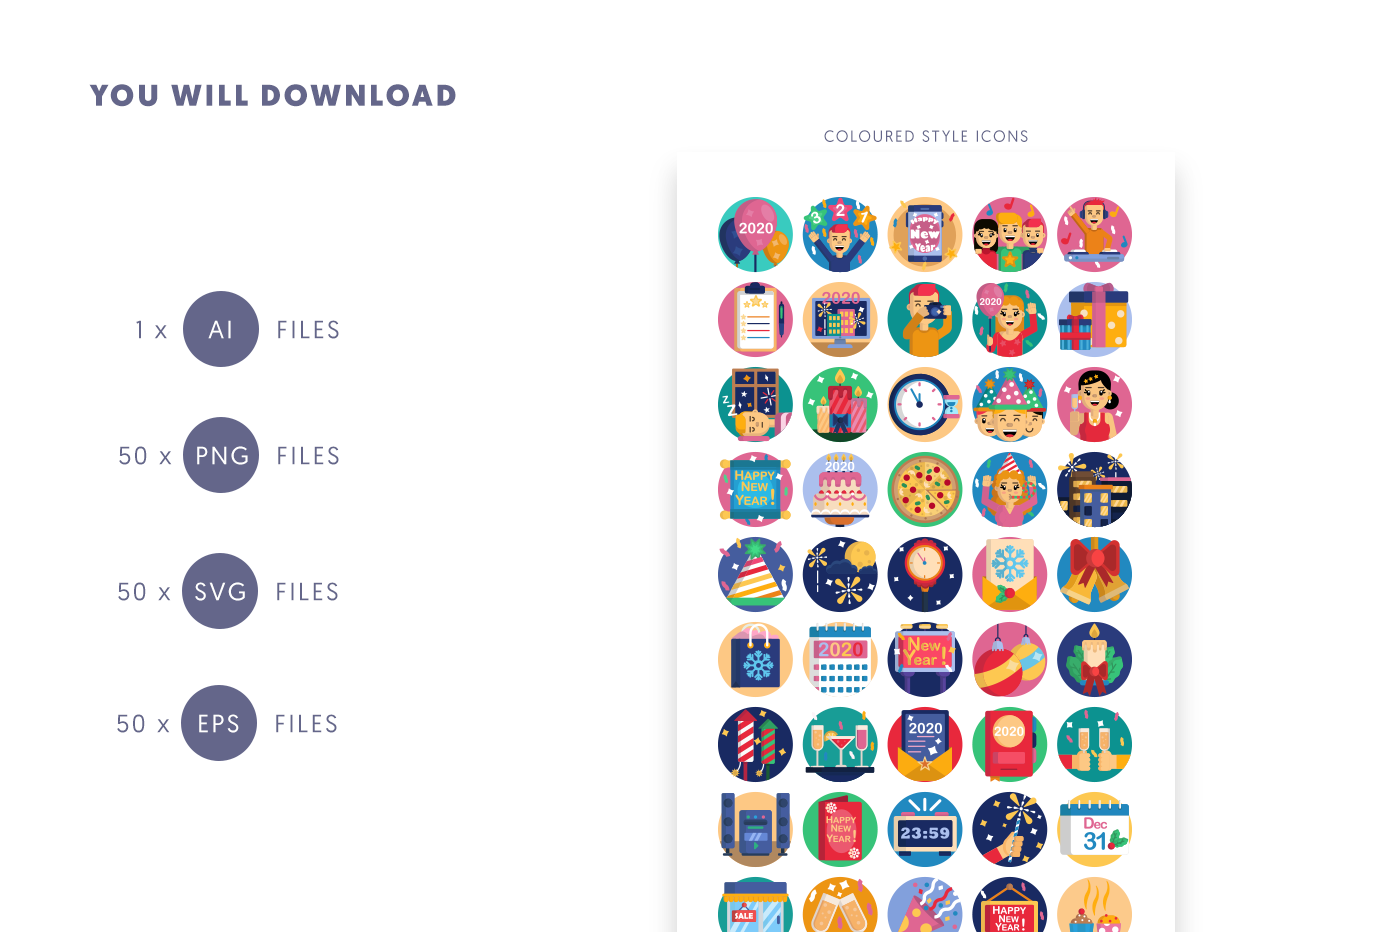 Compatible 50 New Year Icons pack